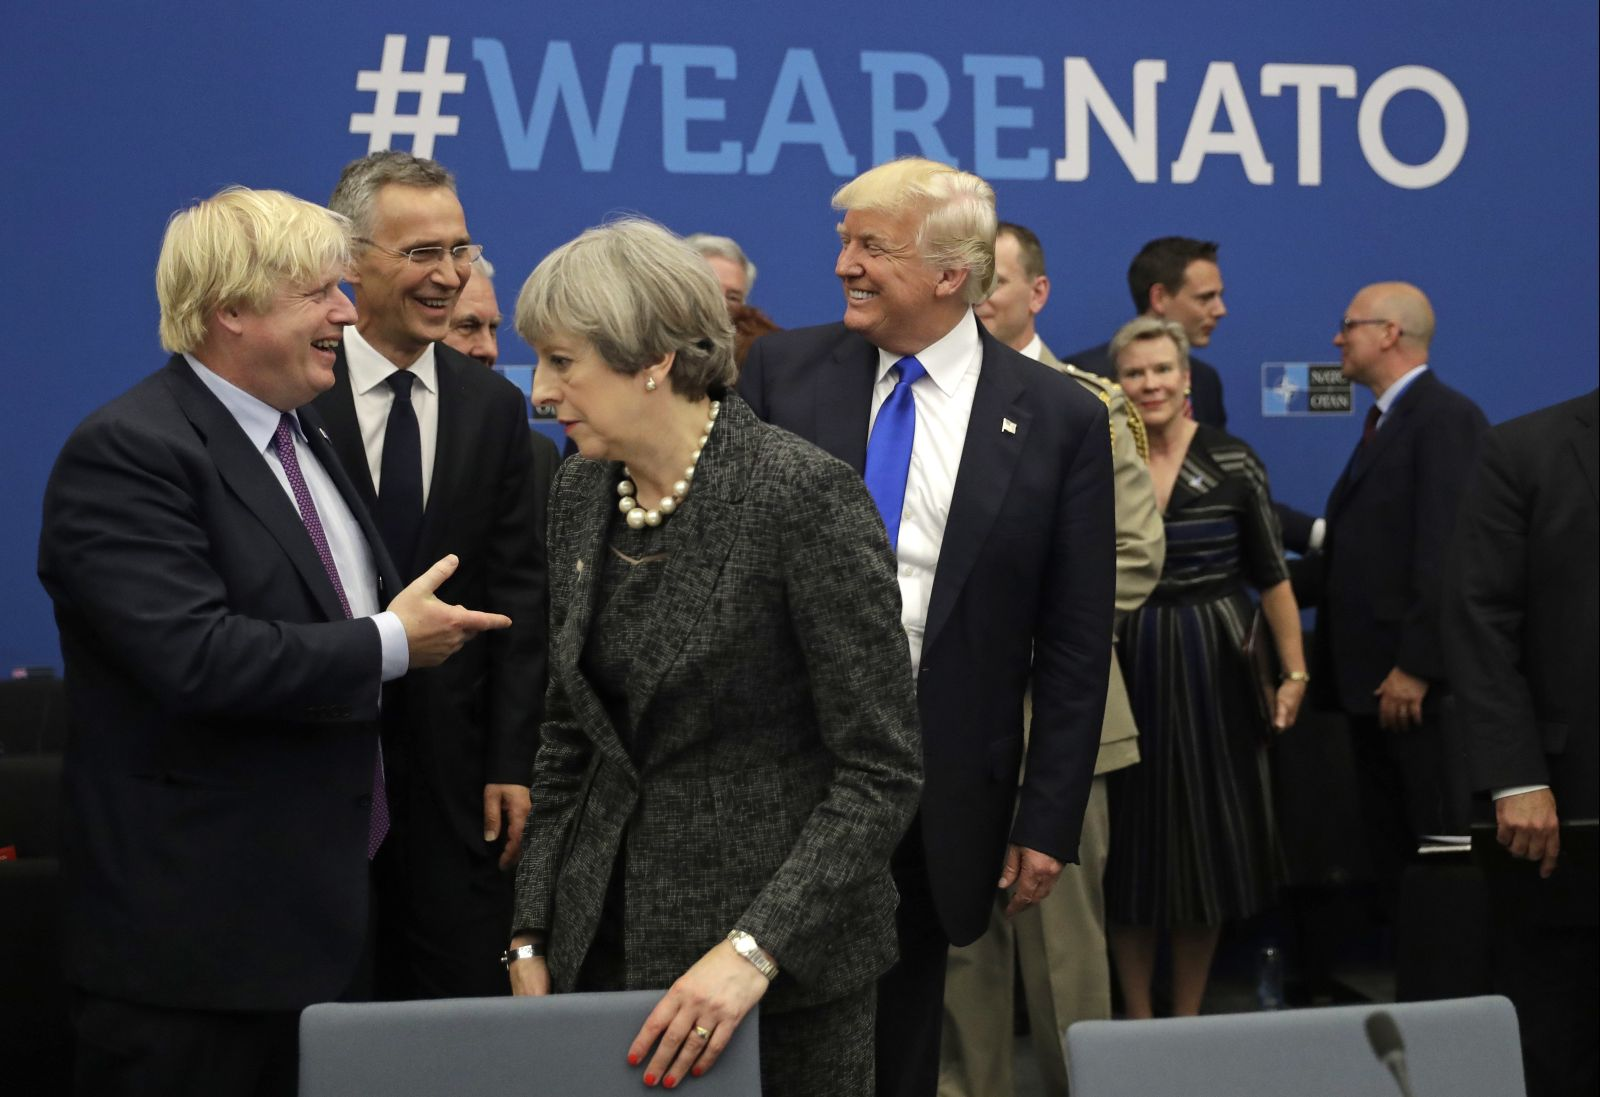 YFILE - In this May 25, 2017, file photo, U.S. President Donald Trump jokes with British Foreign Minister Boris Johnson as British Prime Minister Theresa May walks past during a working dinner meeting at the NATO headquarters during a NATO summit of heads of state and government in Brussels. Threatening to upend generations of global order, Trumps week-long European trip will test the strained bonds with some of the United States closest allies before putting him face-to-face with the leader of the country whose electoral interference helped put him in office.  (AP Photo/Matt Dunham, Pool)